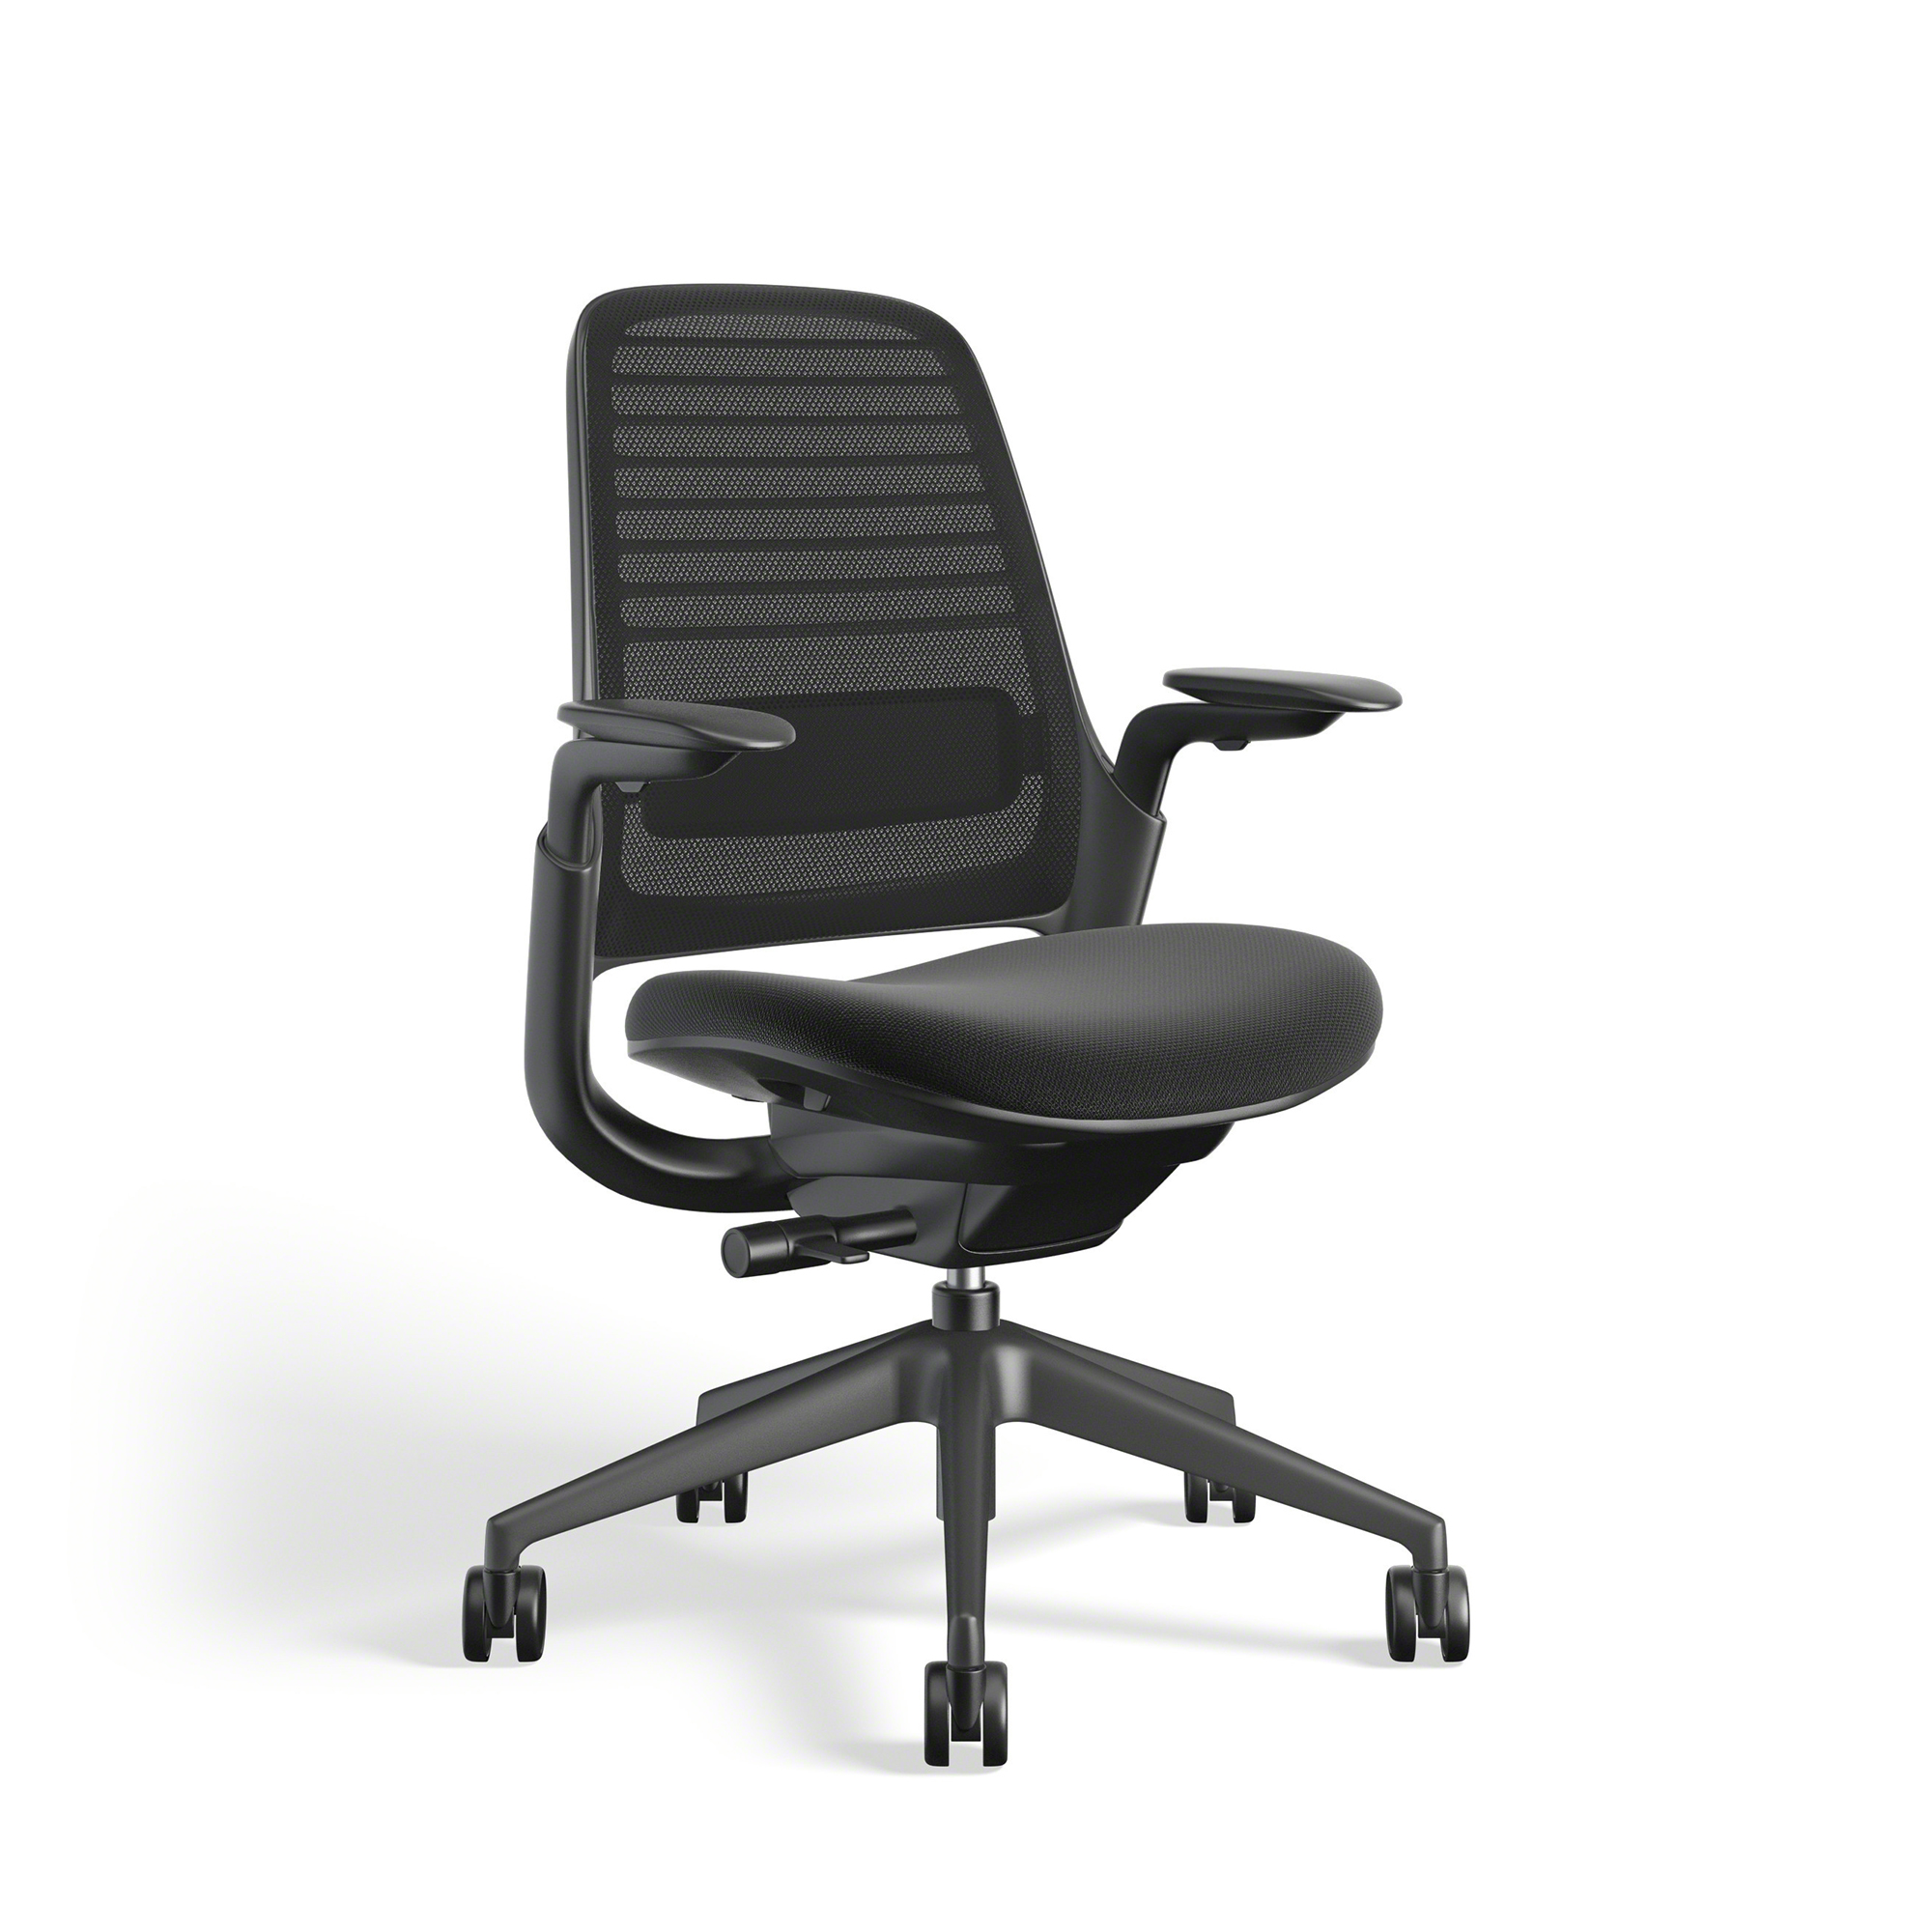 Black Steelcase Series 1 Chair Black Frame Office Furniture Poppin